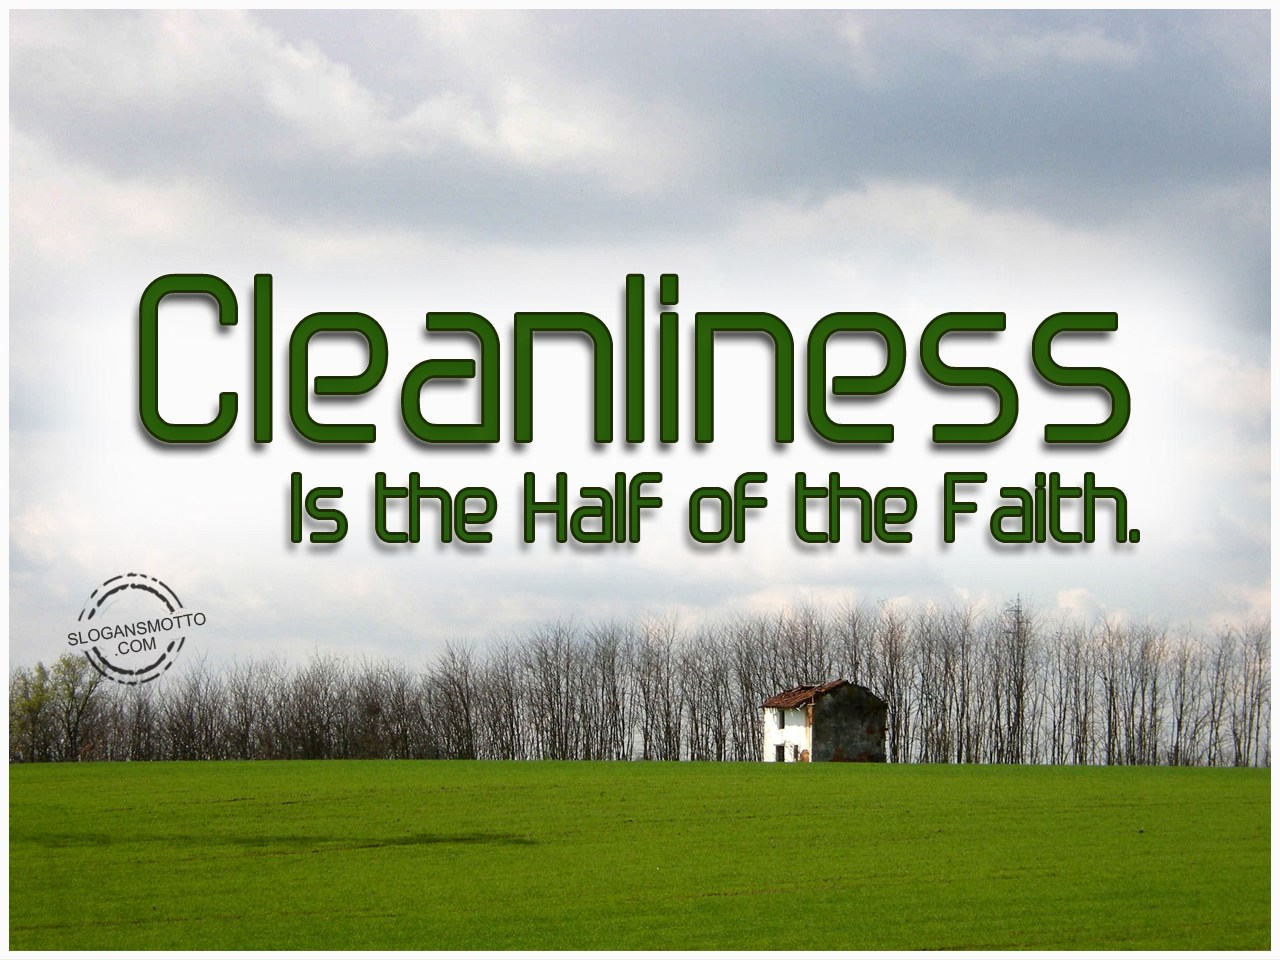 essay on cleanliness in our city Conclusion - essay on cleanliness hurry up participate in essay writing competition incoming search terms: cleanliness is next to godliness it was initiated with an aim to clean 4014 statutory cities and towns all over the nation the government nominated famous personalities to carry forward.